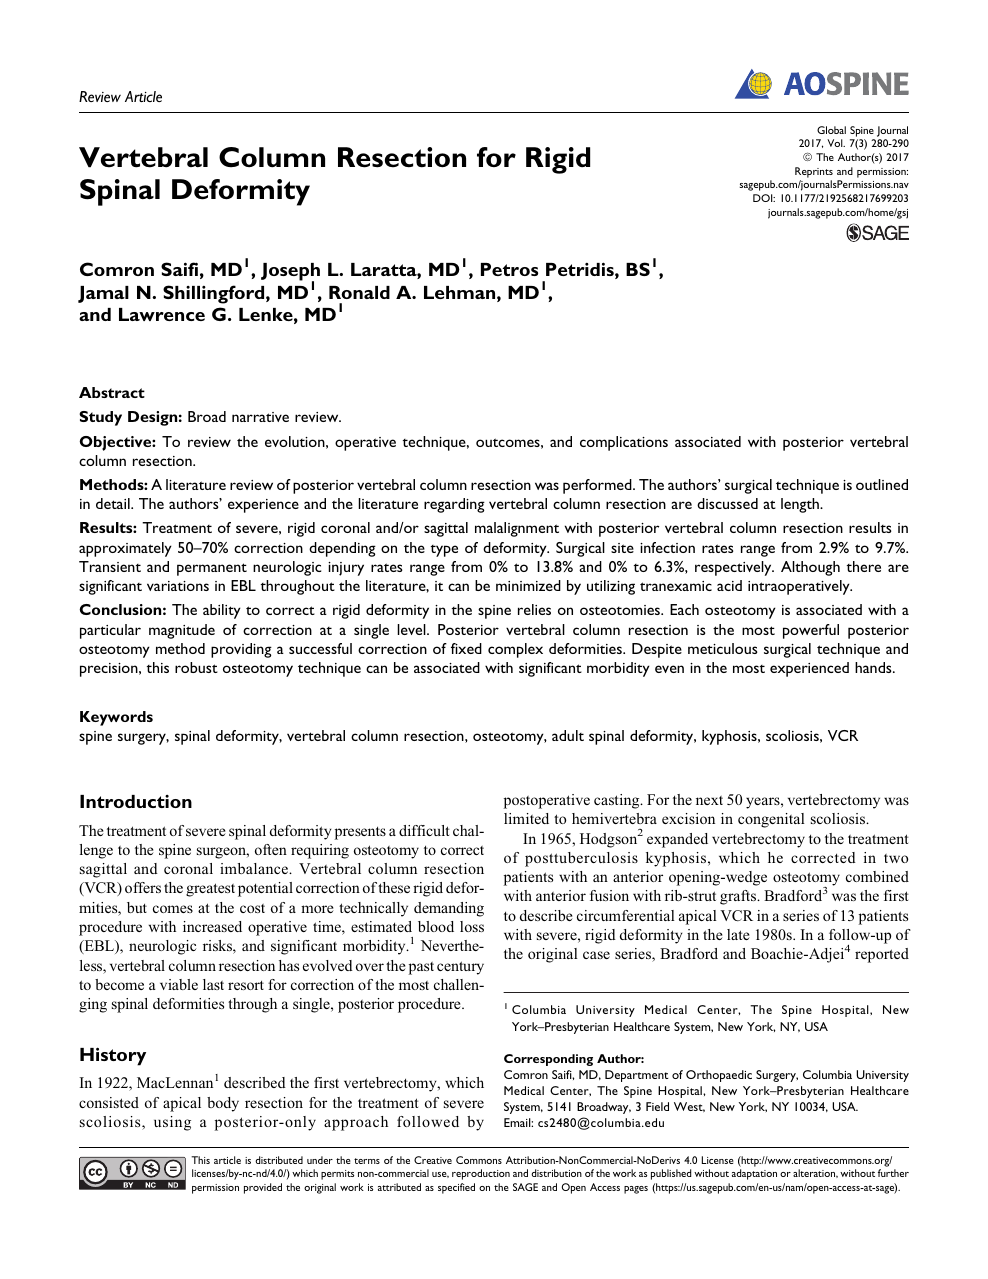 Vertebral Column Resection for Rigid Spinal Deformity – topic of